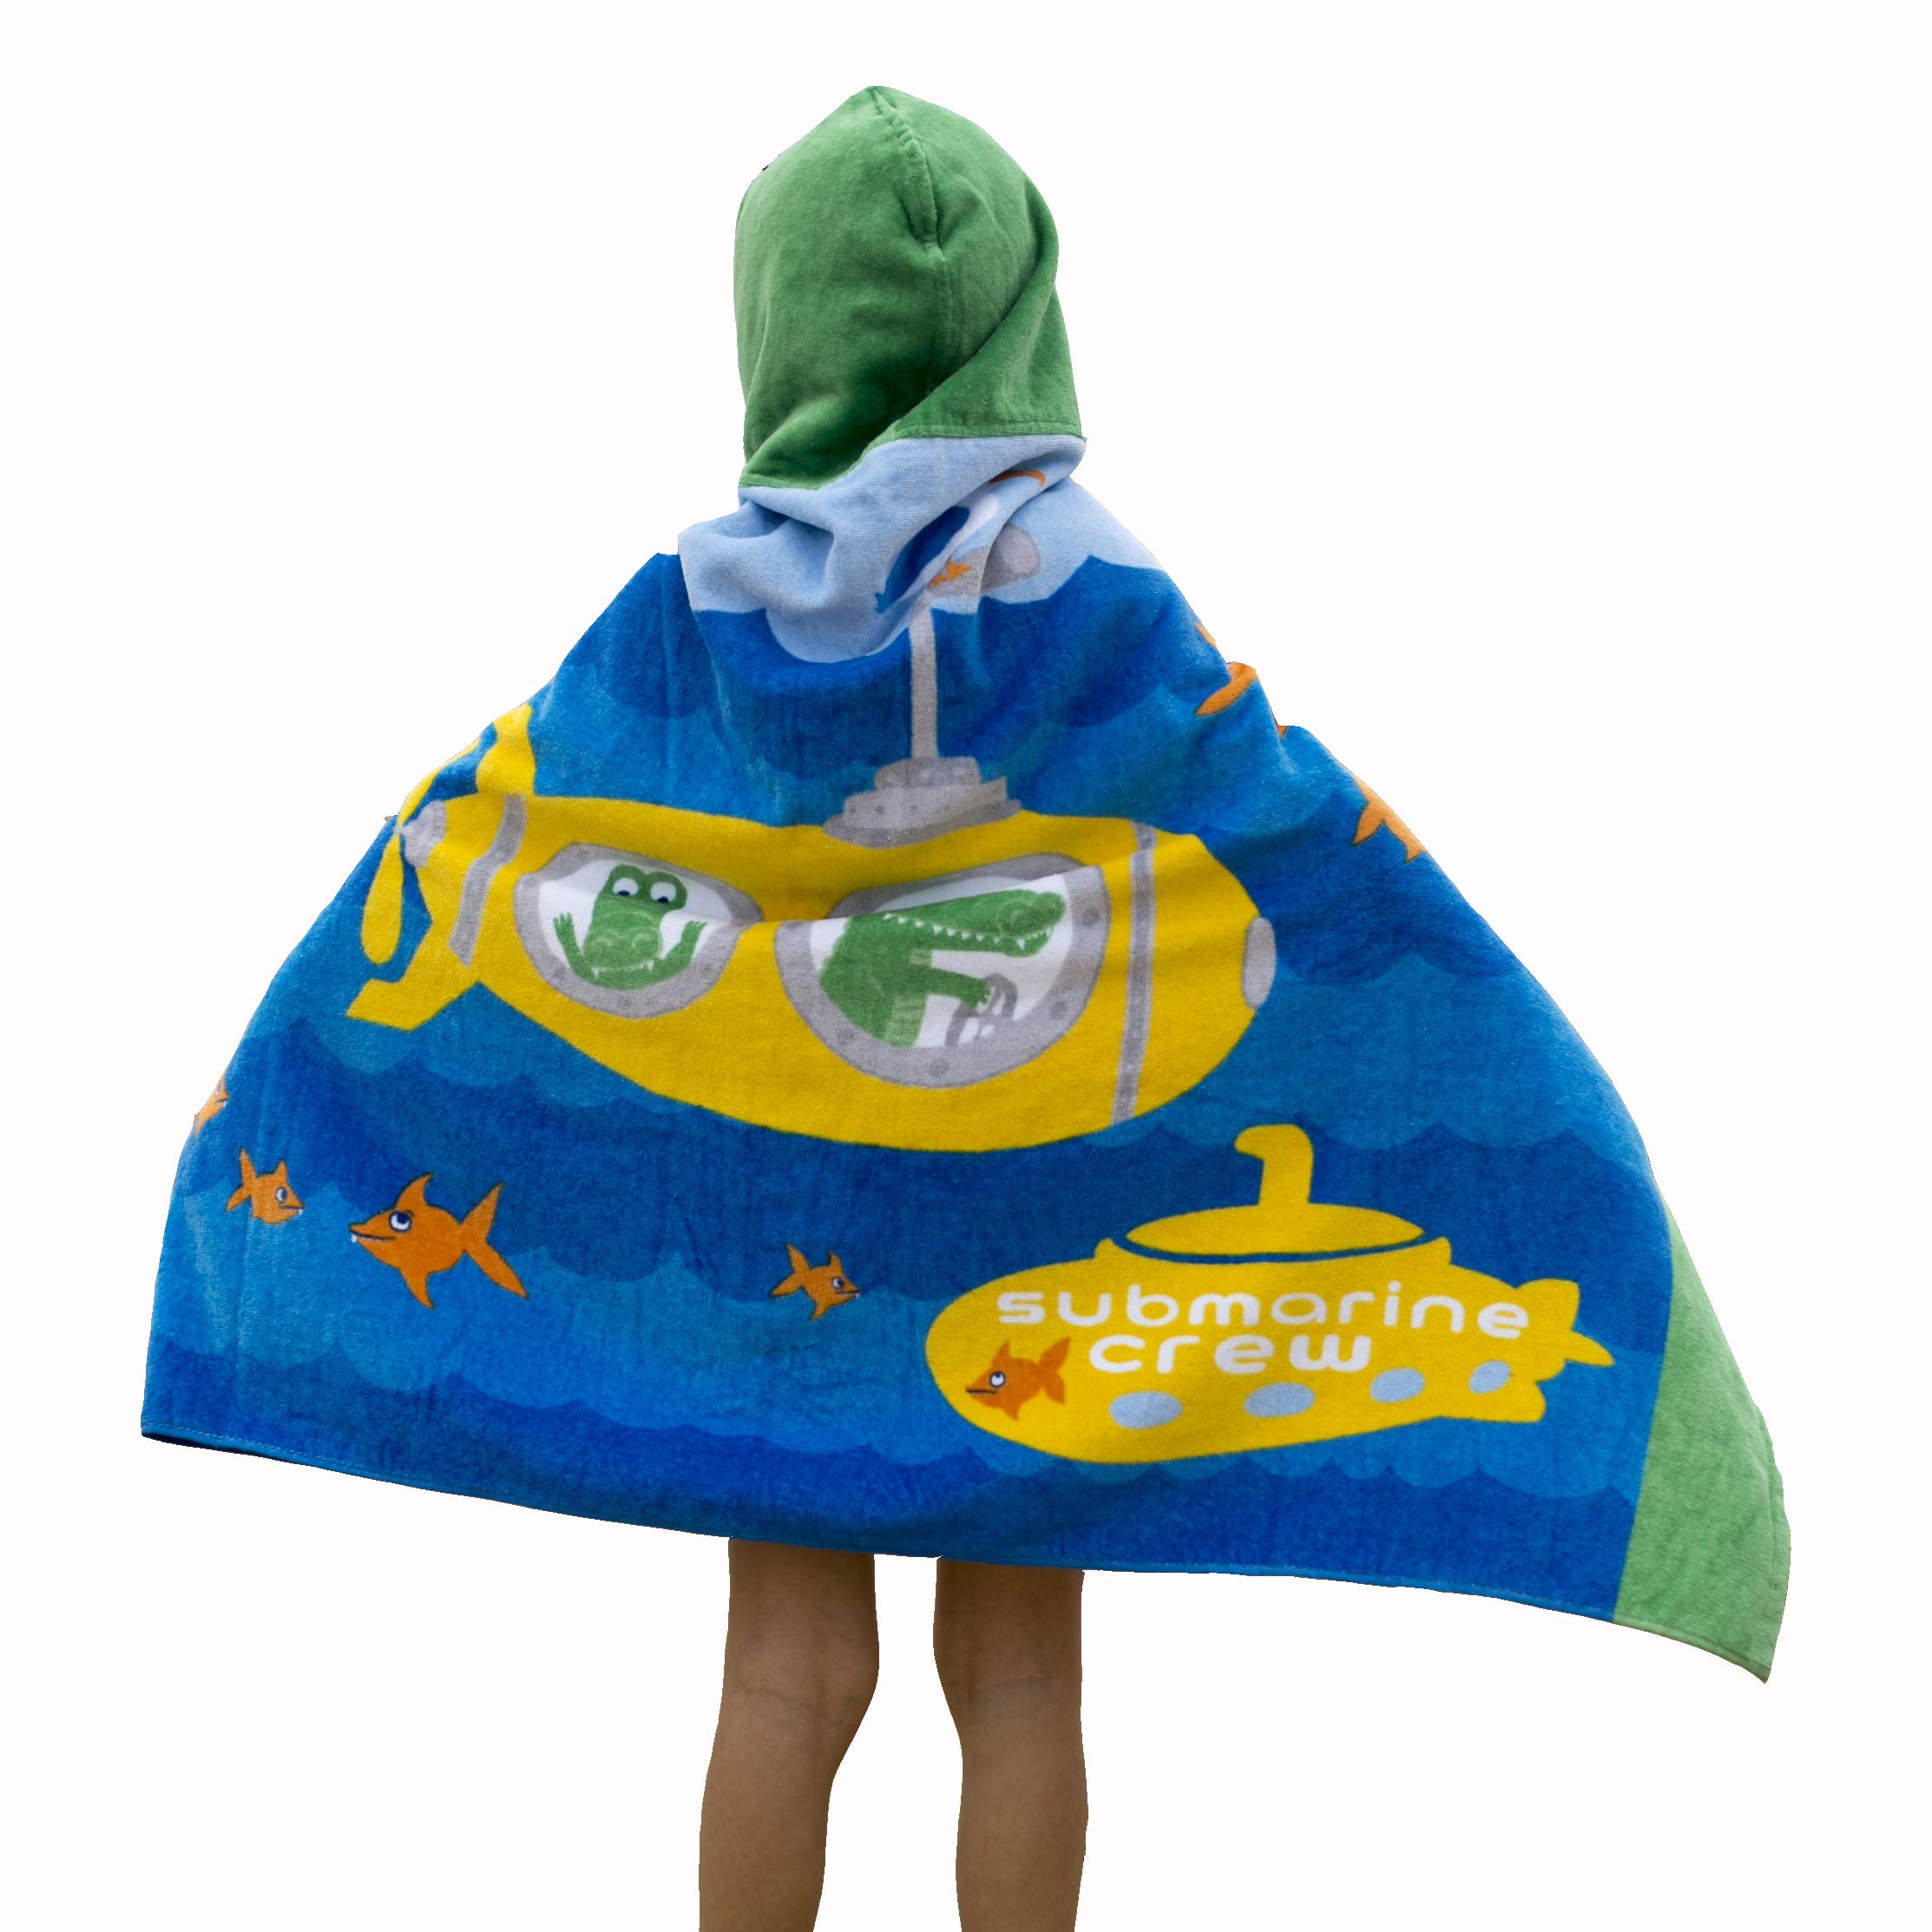 Wowelife Submarine Hooded Bath Towel Kids for Bath, Pool and Beach, 100% Cotton 30 x 50 inch Upgraded Extended Length for Boys and Girls, Fits 4-12 Years Old(Submarine Crew)